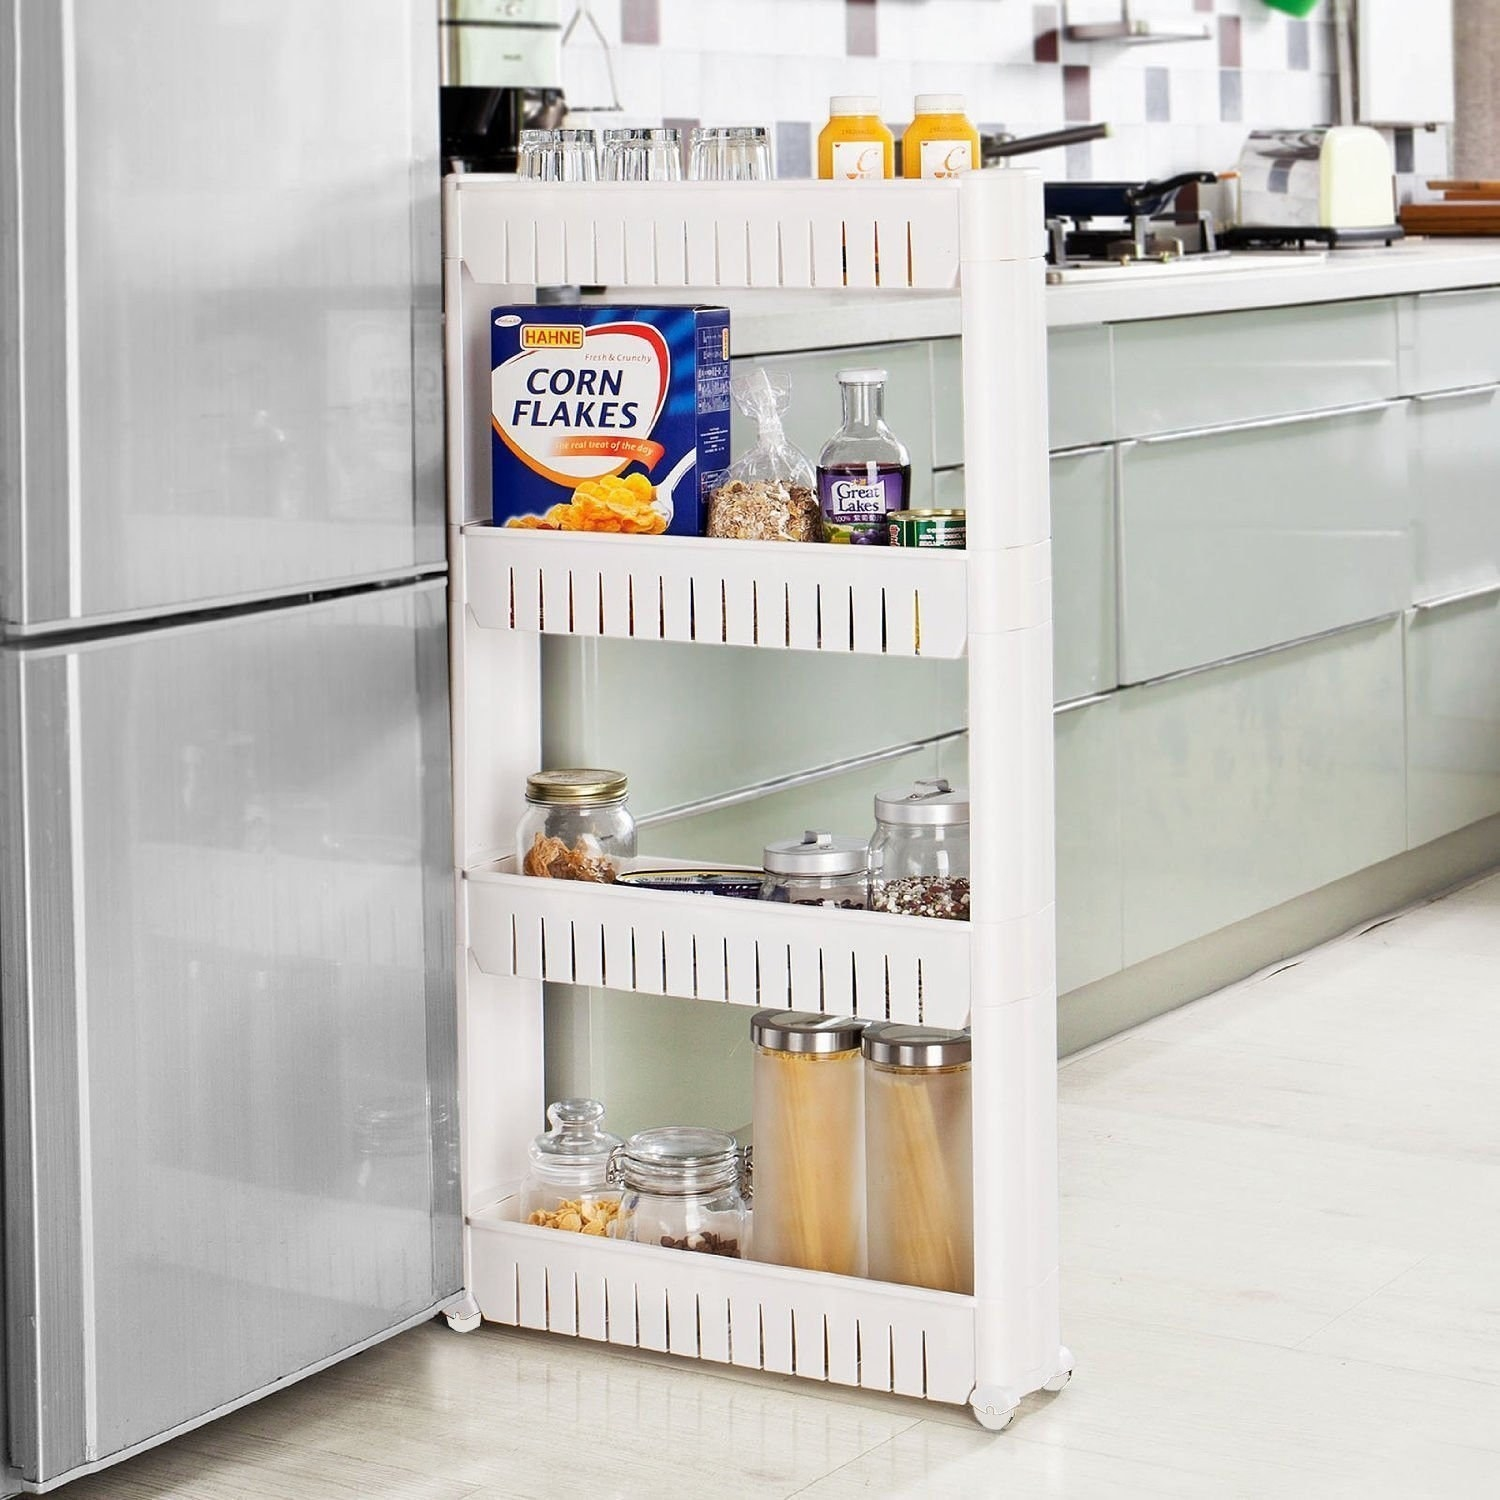 The rack being used to store kitchen products like cereal, pasta, sauces, and glassware.